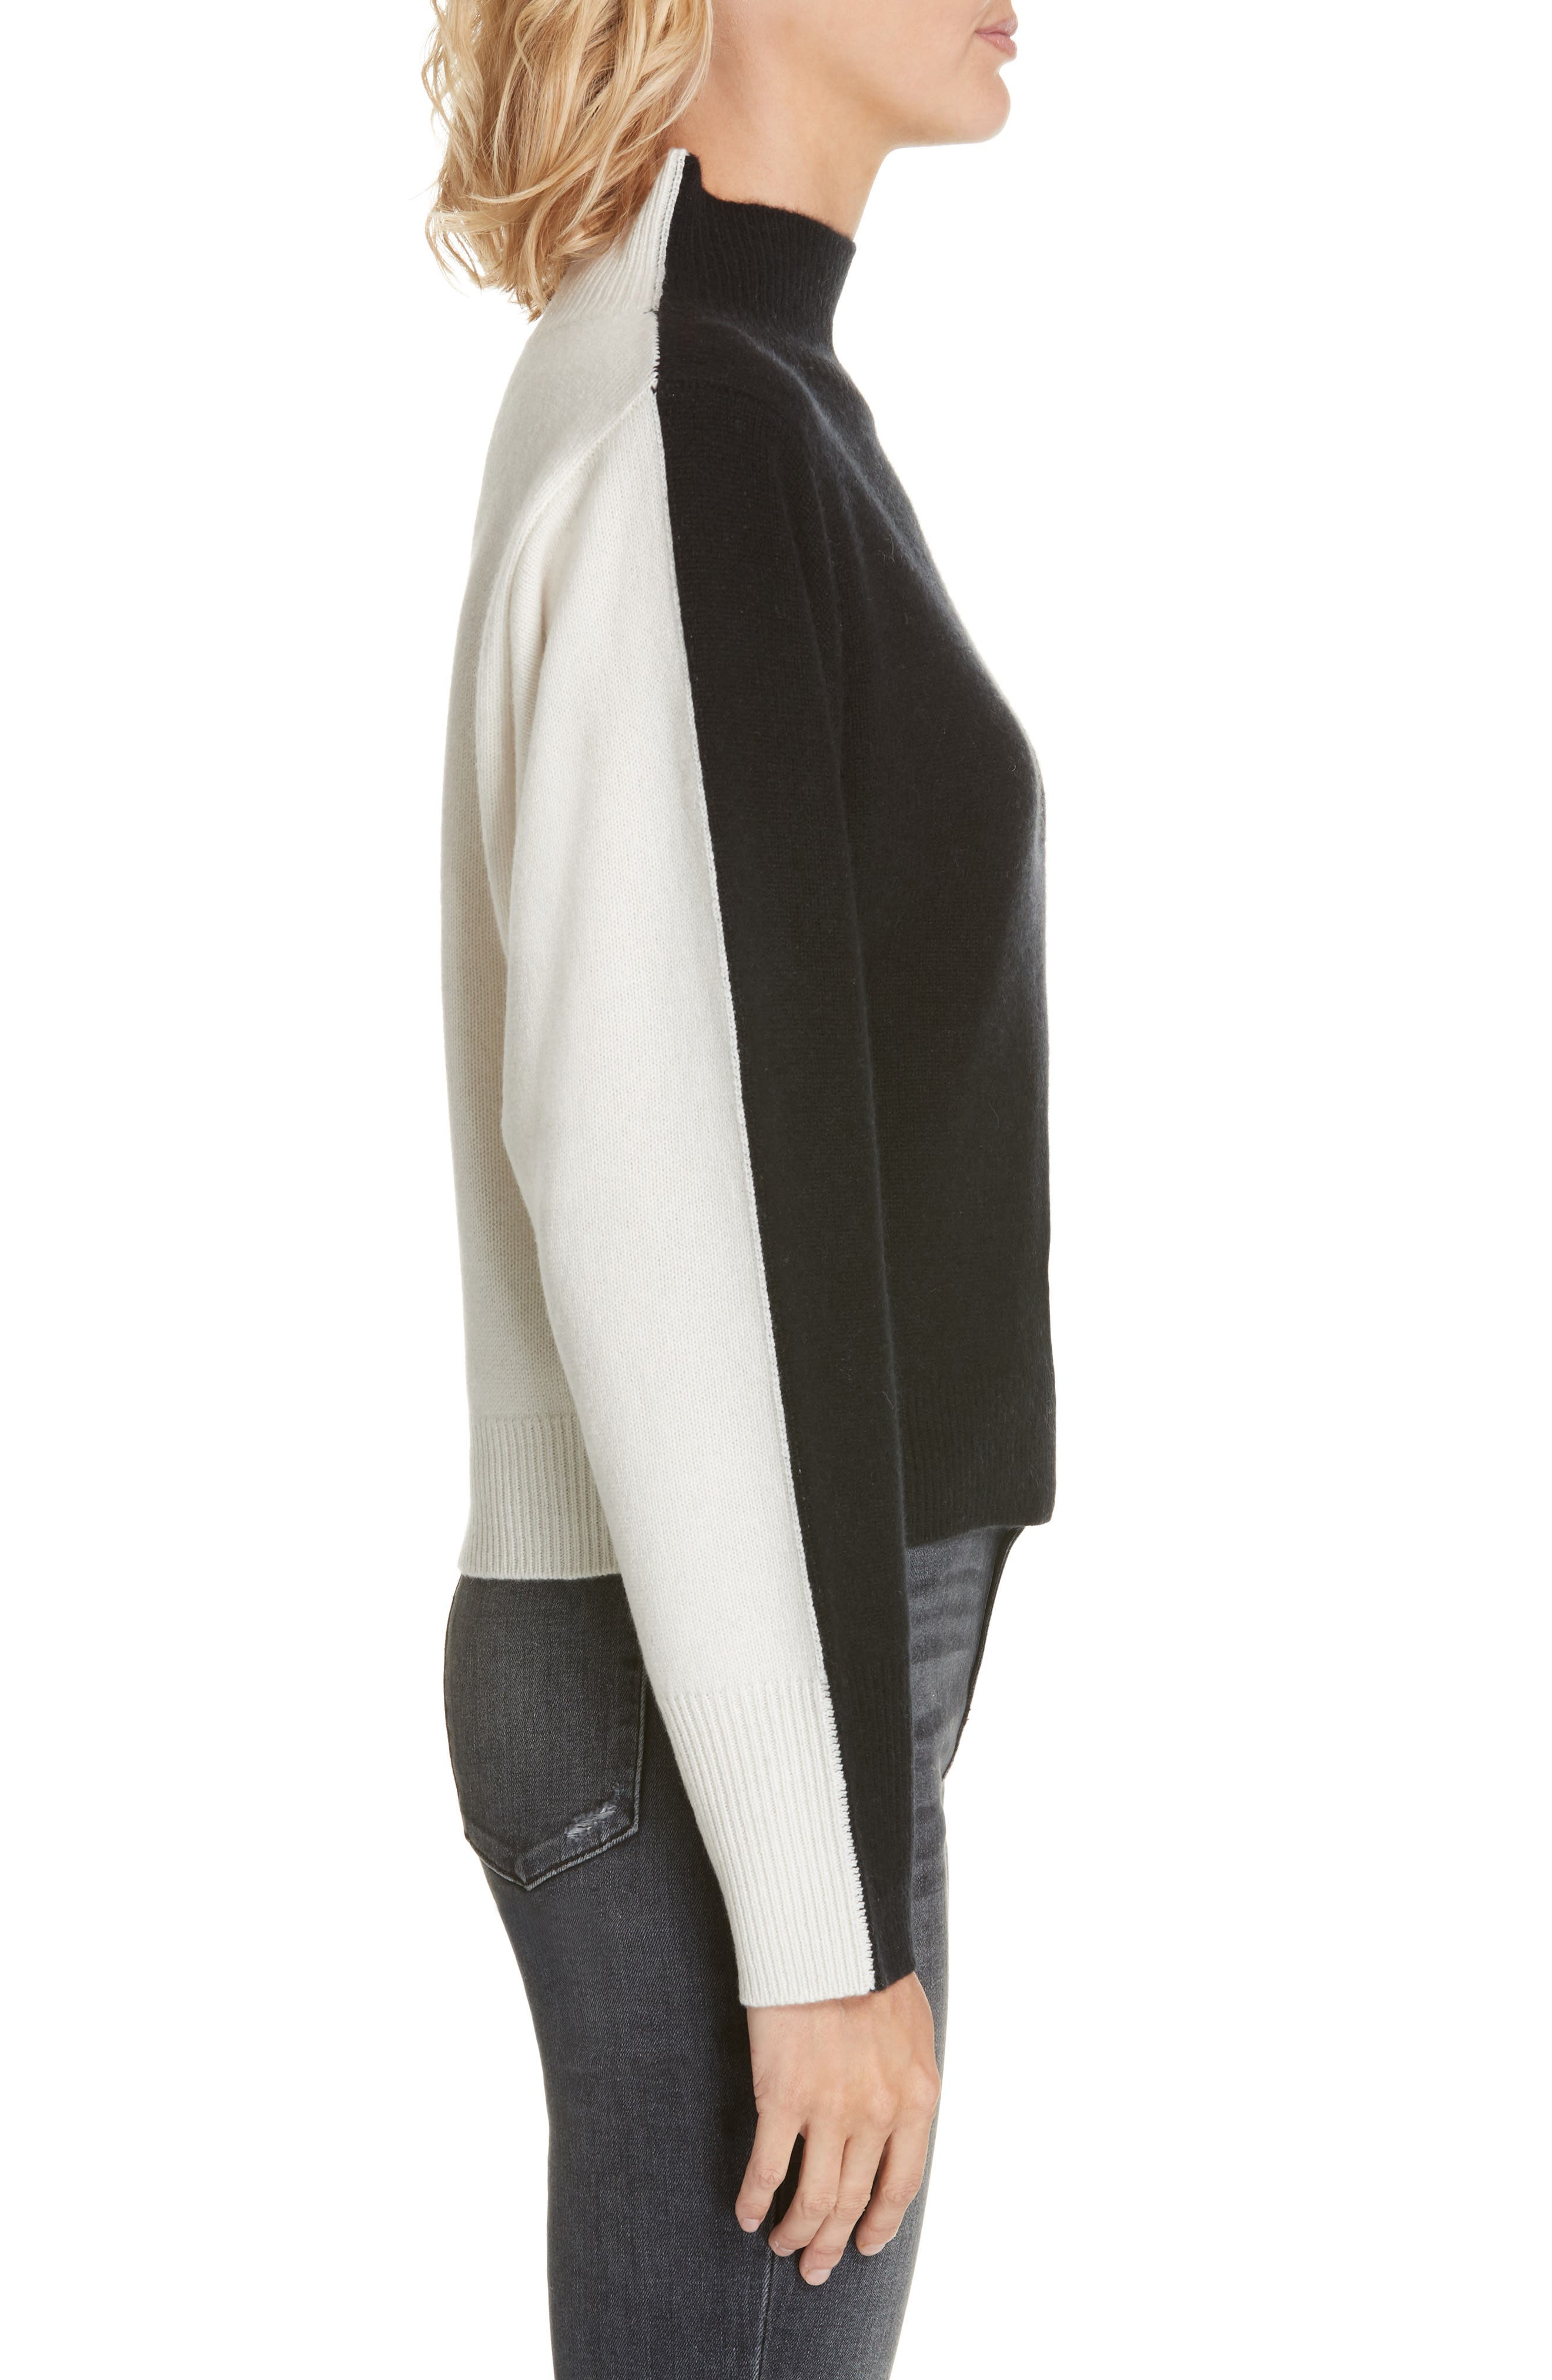 NORDSTROM SIGNATURE, Colorblock Cashmere Sweater, Alternate thumbnail 3, color, BLACK- IVORY COMBO